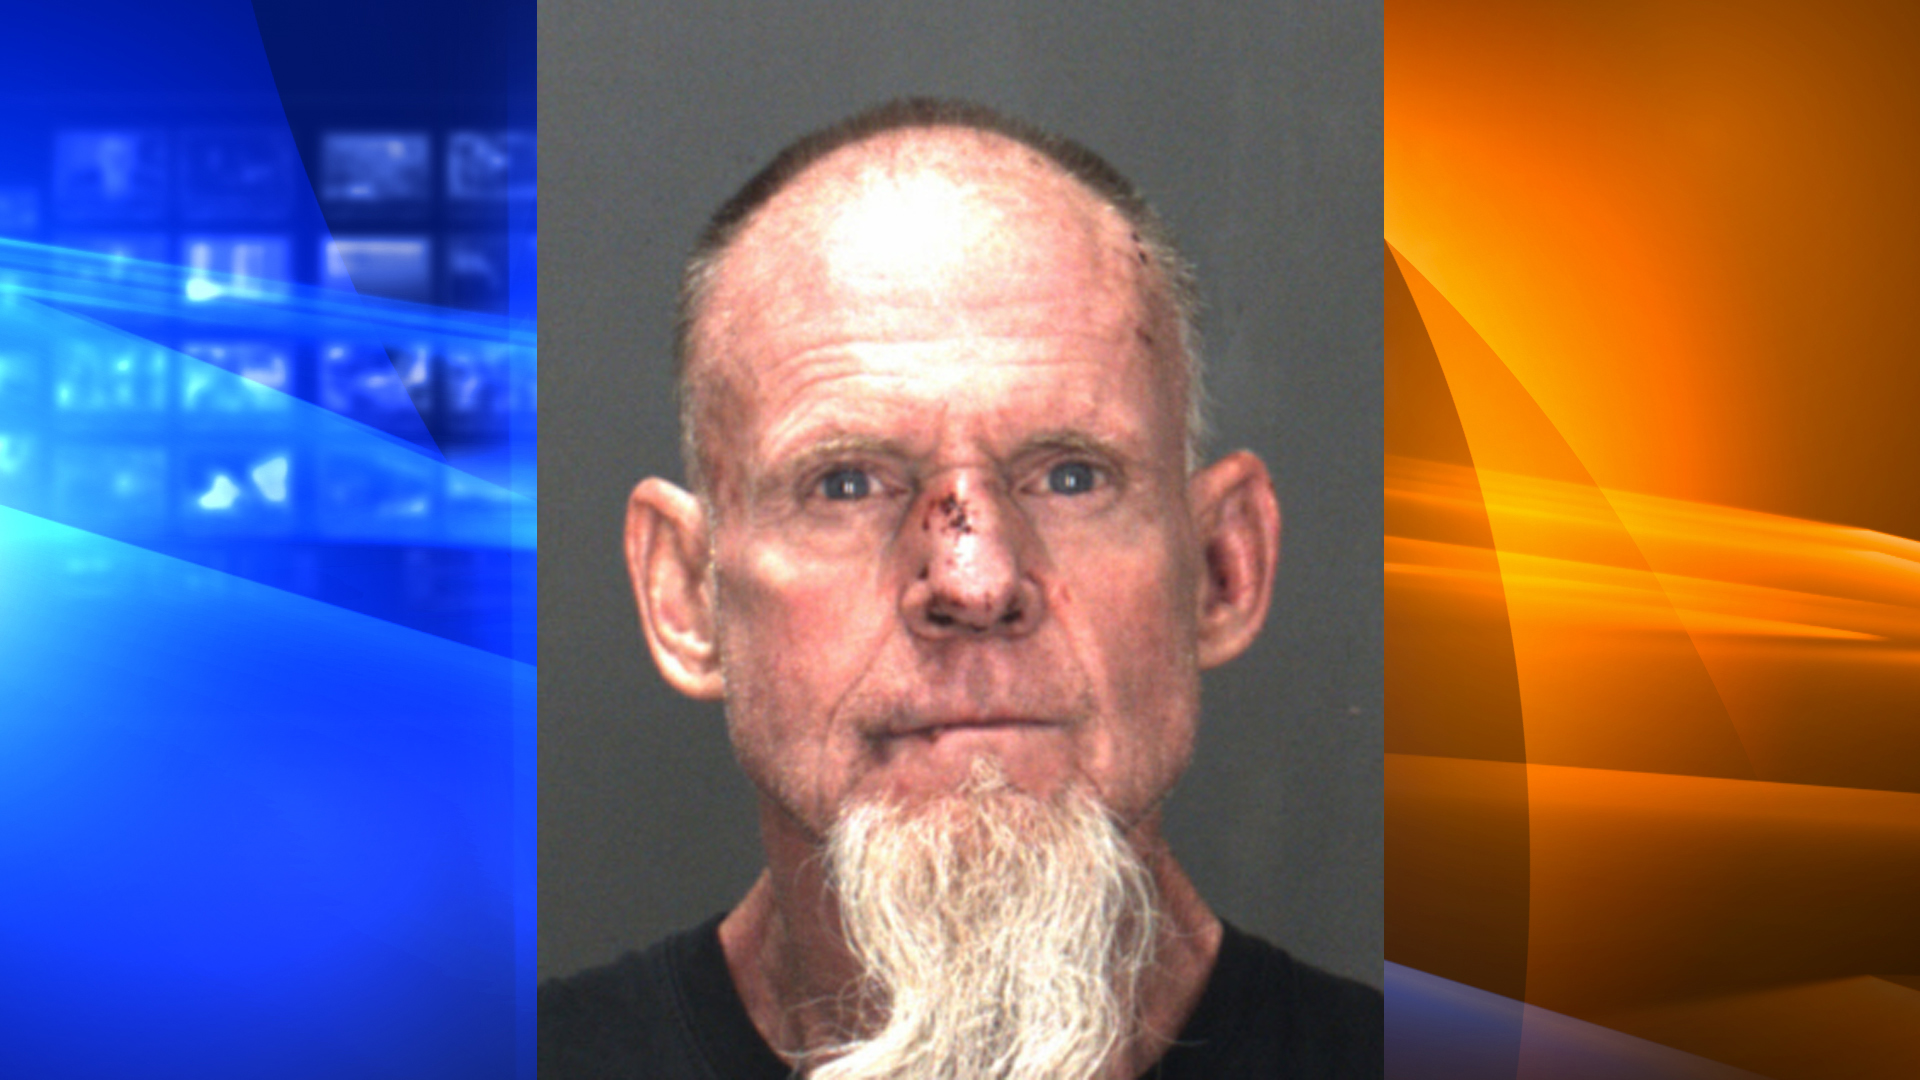 David Jeffery Hemsley, 58, of Chino, pictured in a photo released by the Chino Police Department following his arrest on June 29, 2019.